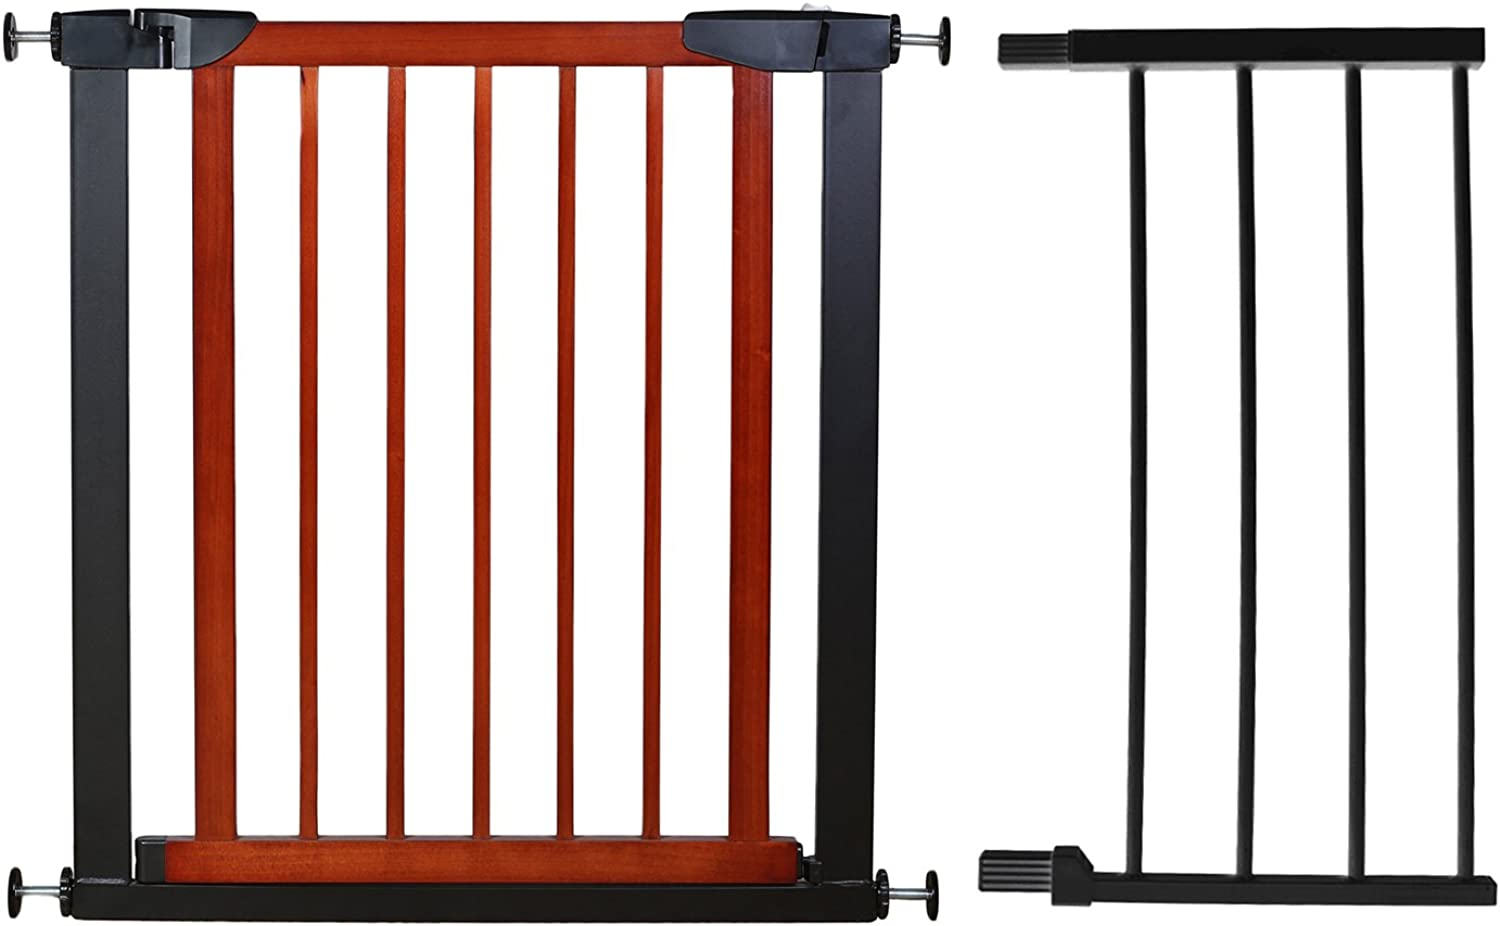 Fairy Baby Pet & Baby Gate Narrow Extra Wide for Stairs Metal and Wood Pressure Mounted Safety Walk Through Gate,Fit Spaces 68.11 70.87  (37 Days Delivered)